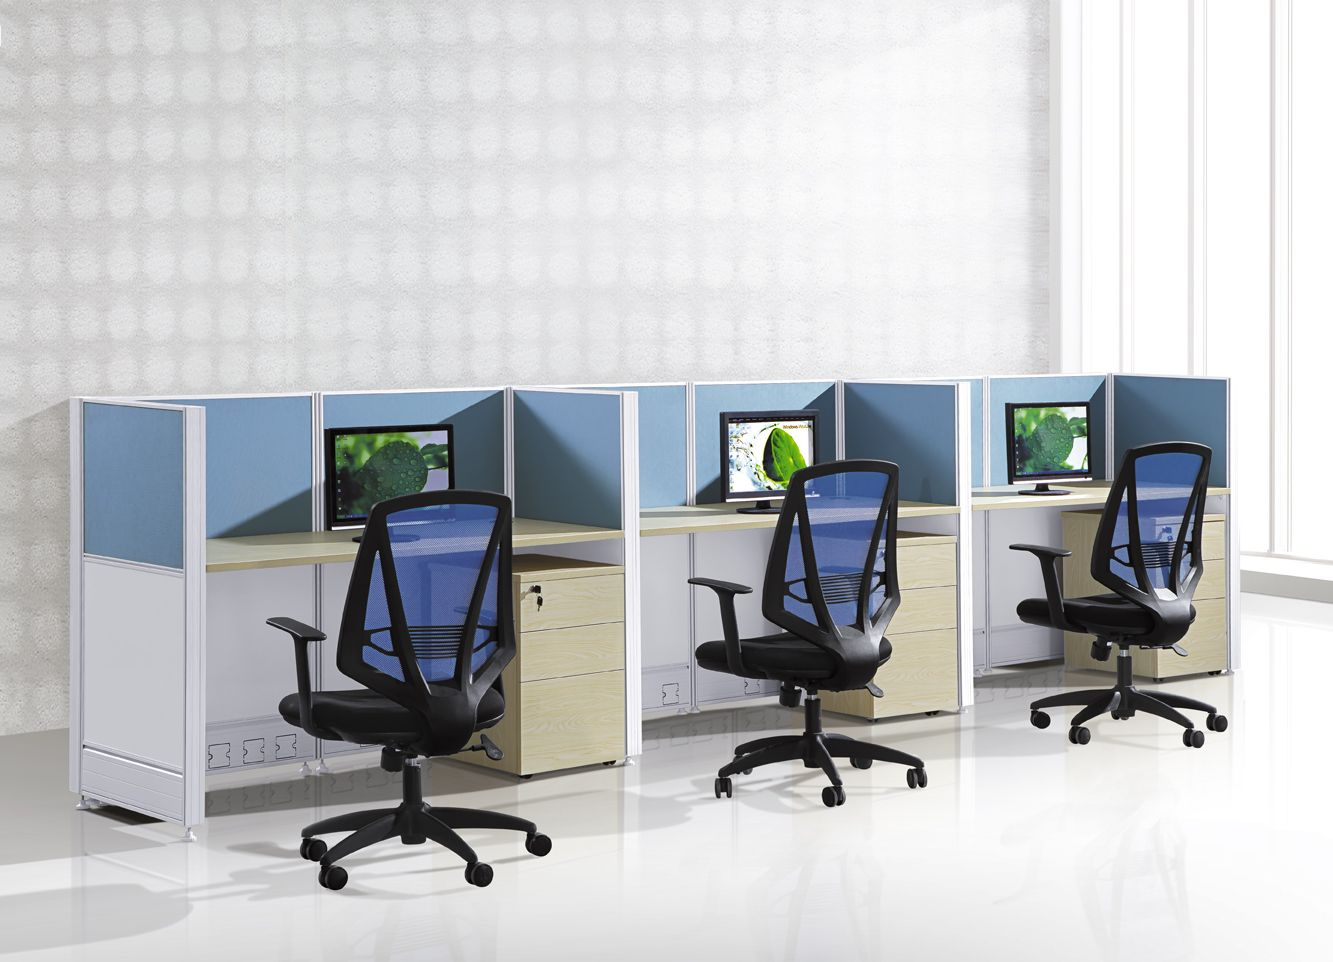 Large Office Cubicles For Sale Commercial Office Cubicles Office Furniture Shop Office Partition Office Workstations Office Cubicle